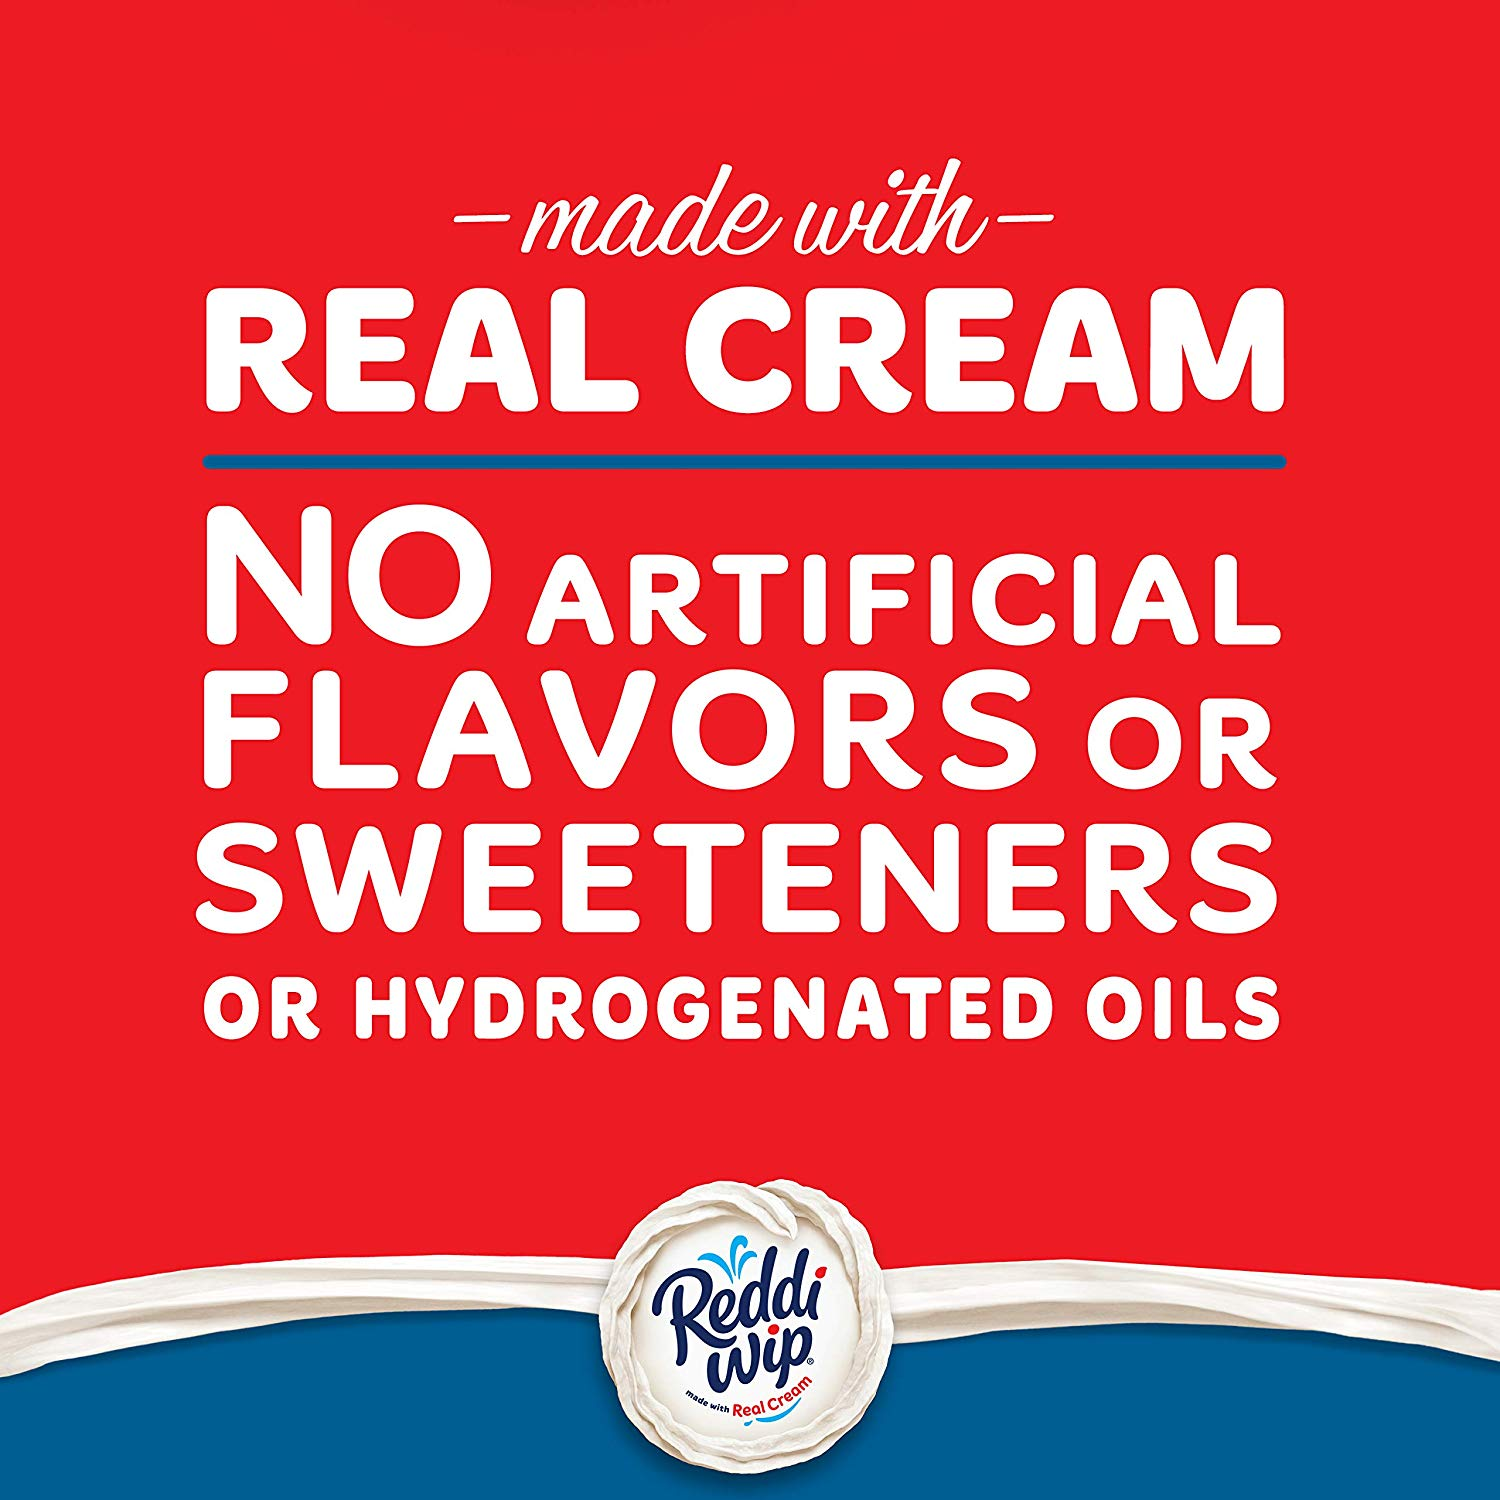 Made with Real Cream, No artificial flavors or Sweeteneror hydrogenated oils